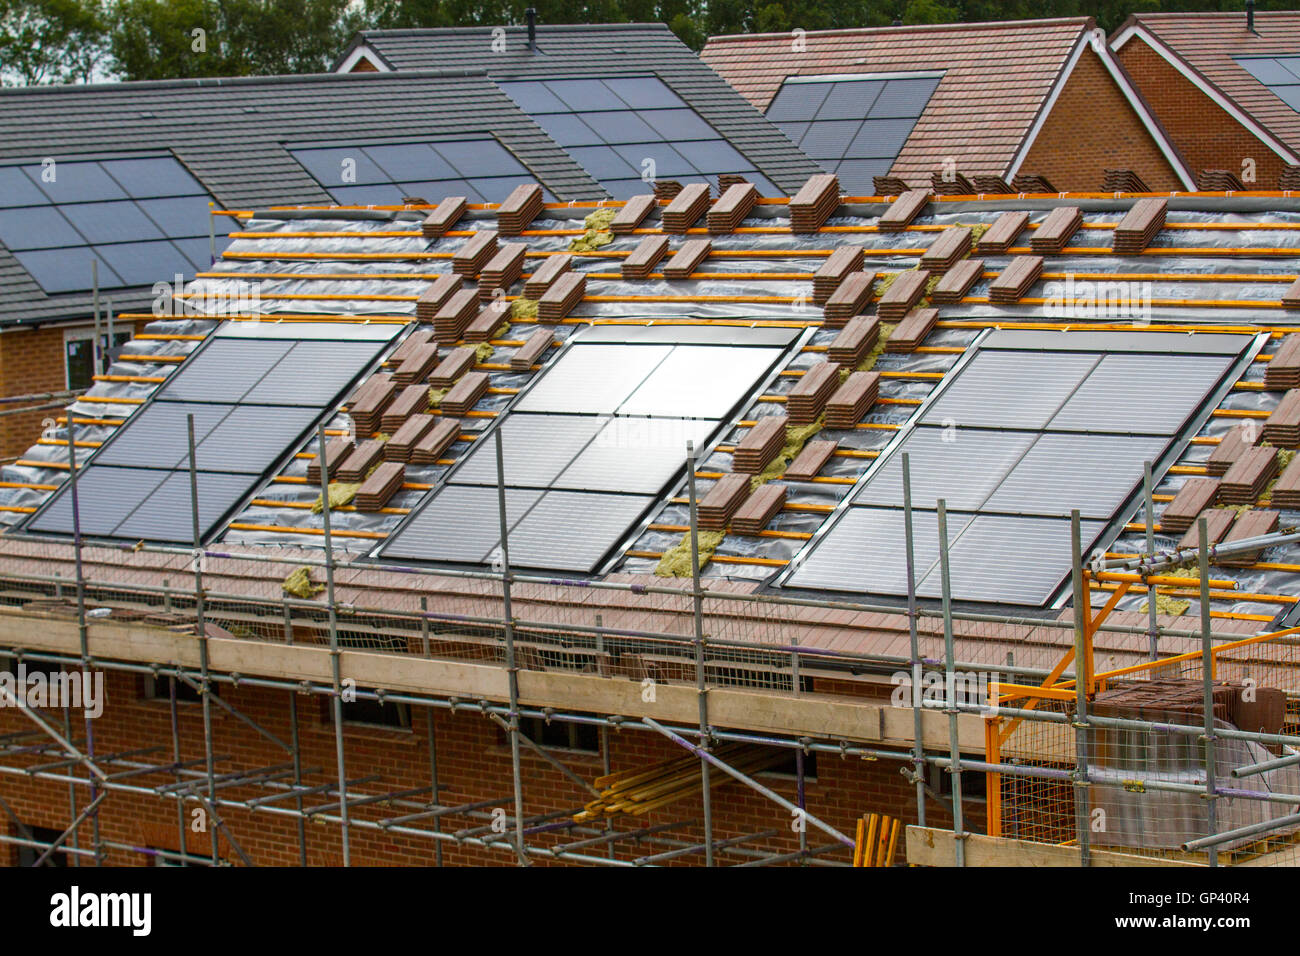 Redrow New Build houses under construction,  small energy efficient homes with roof tiles integrated solar panels, - Stock Image